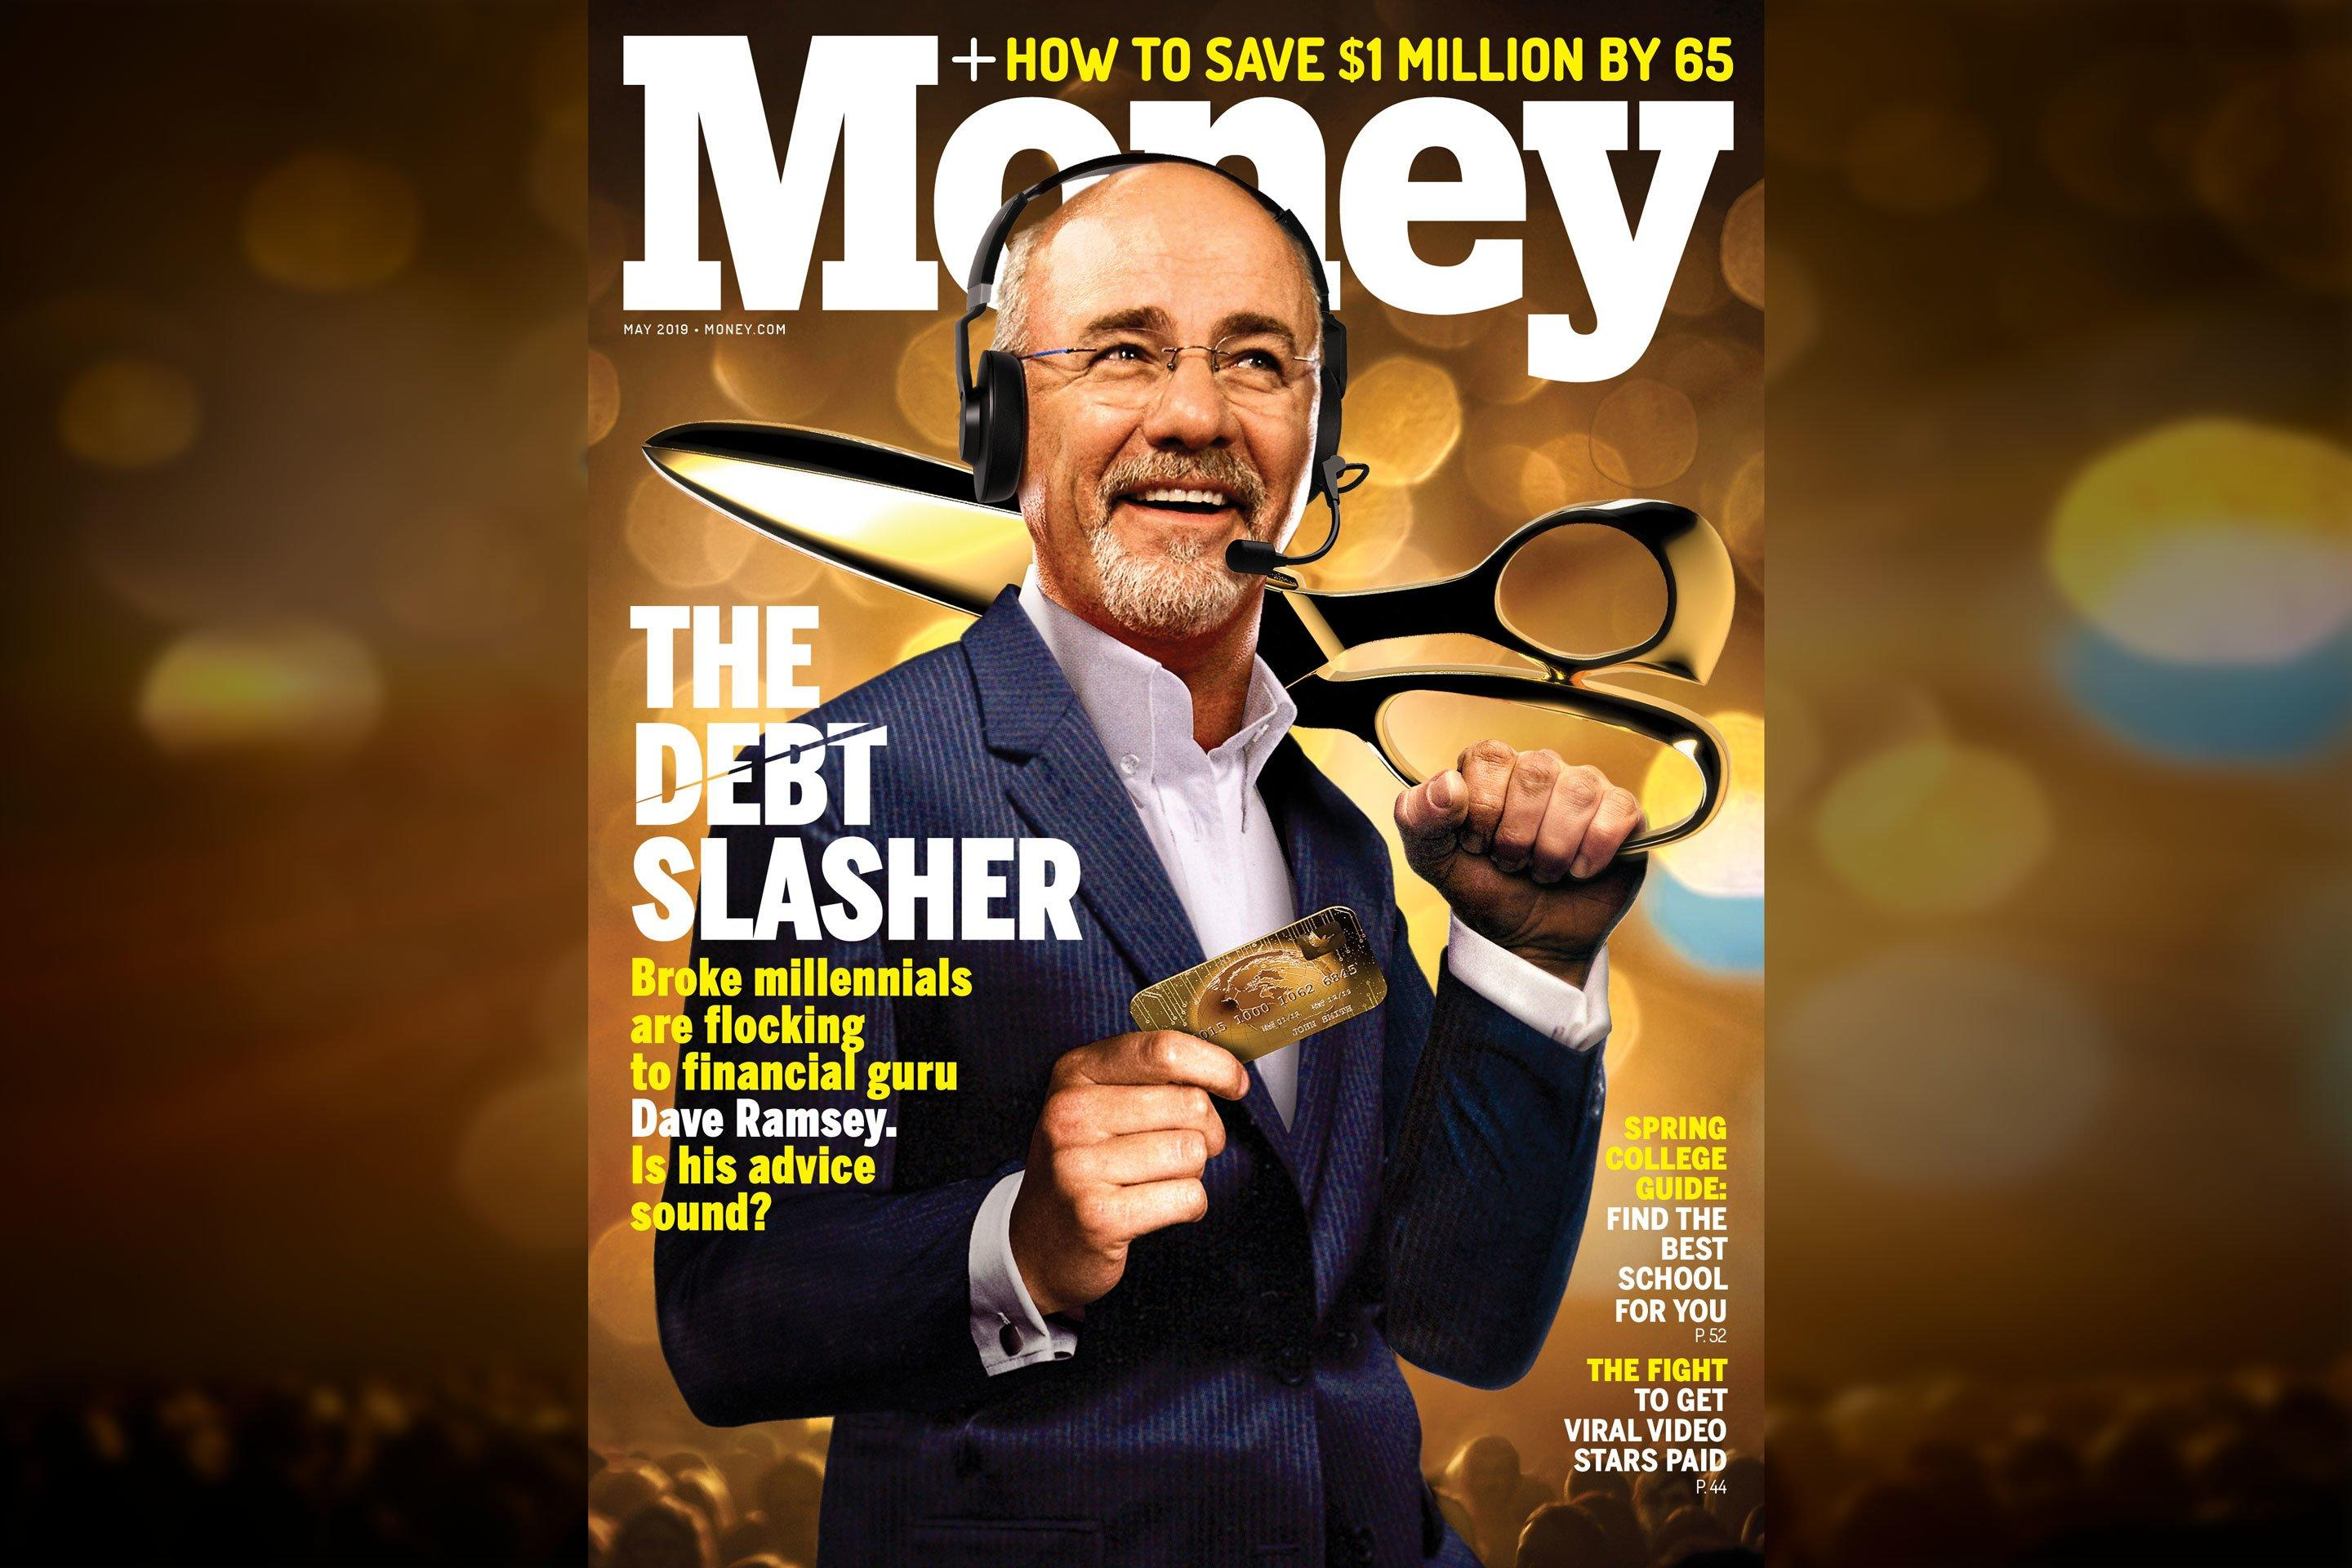 Dave Ramsey's debt free advice is very popular with millennials. Here's why